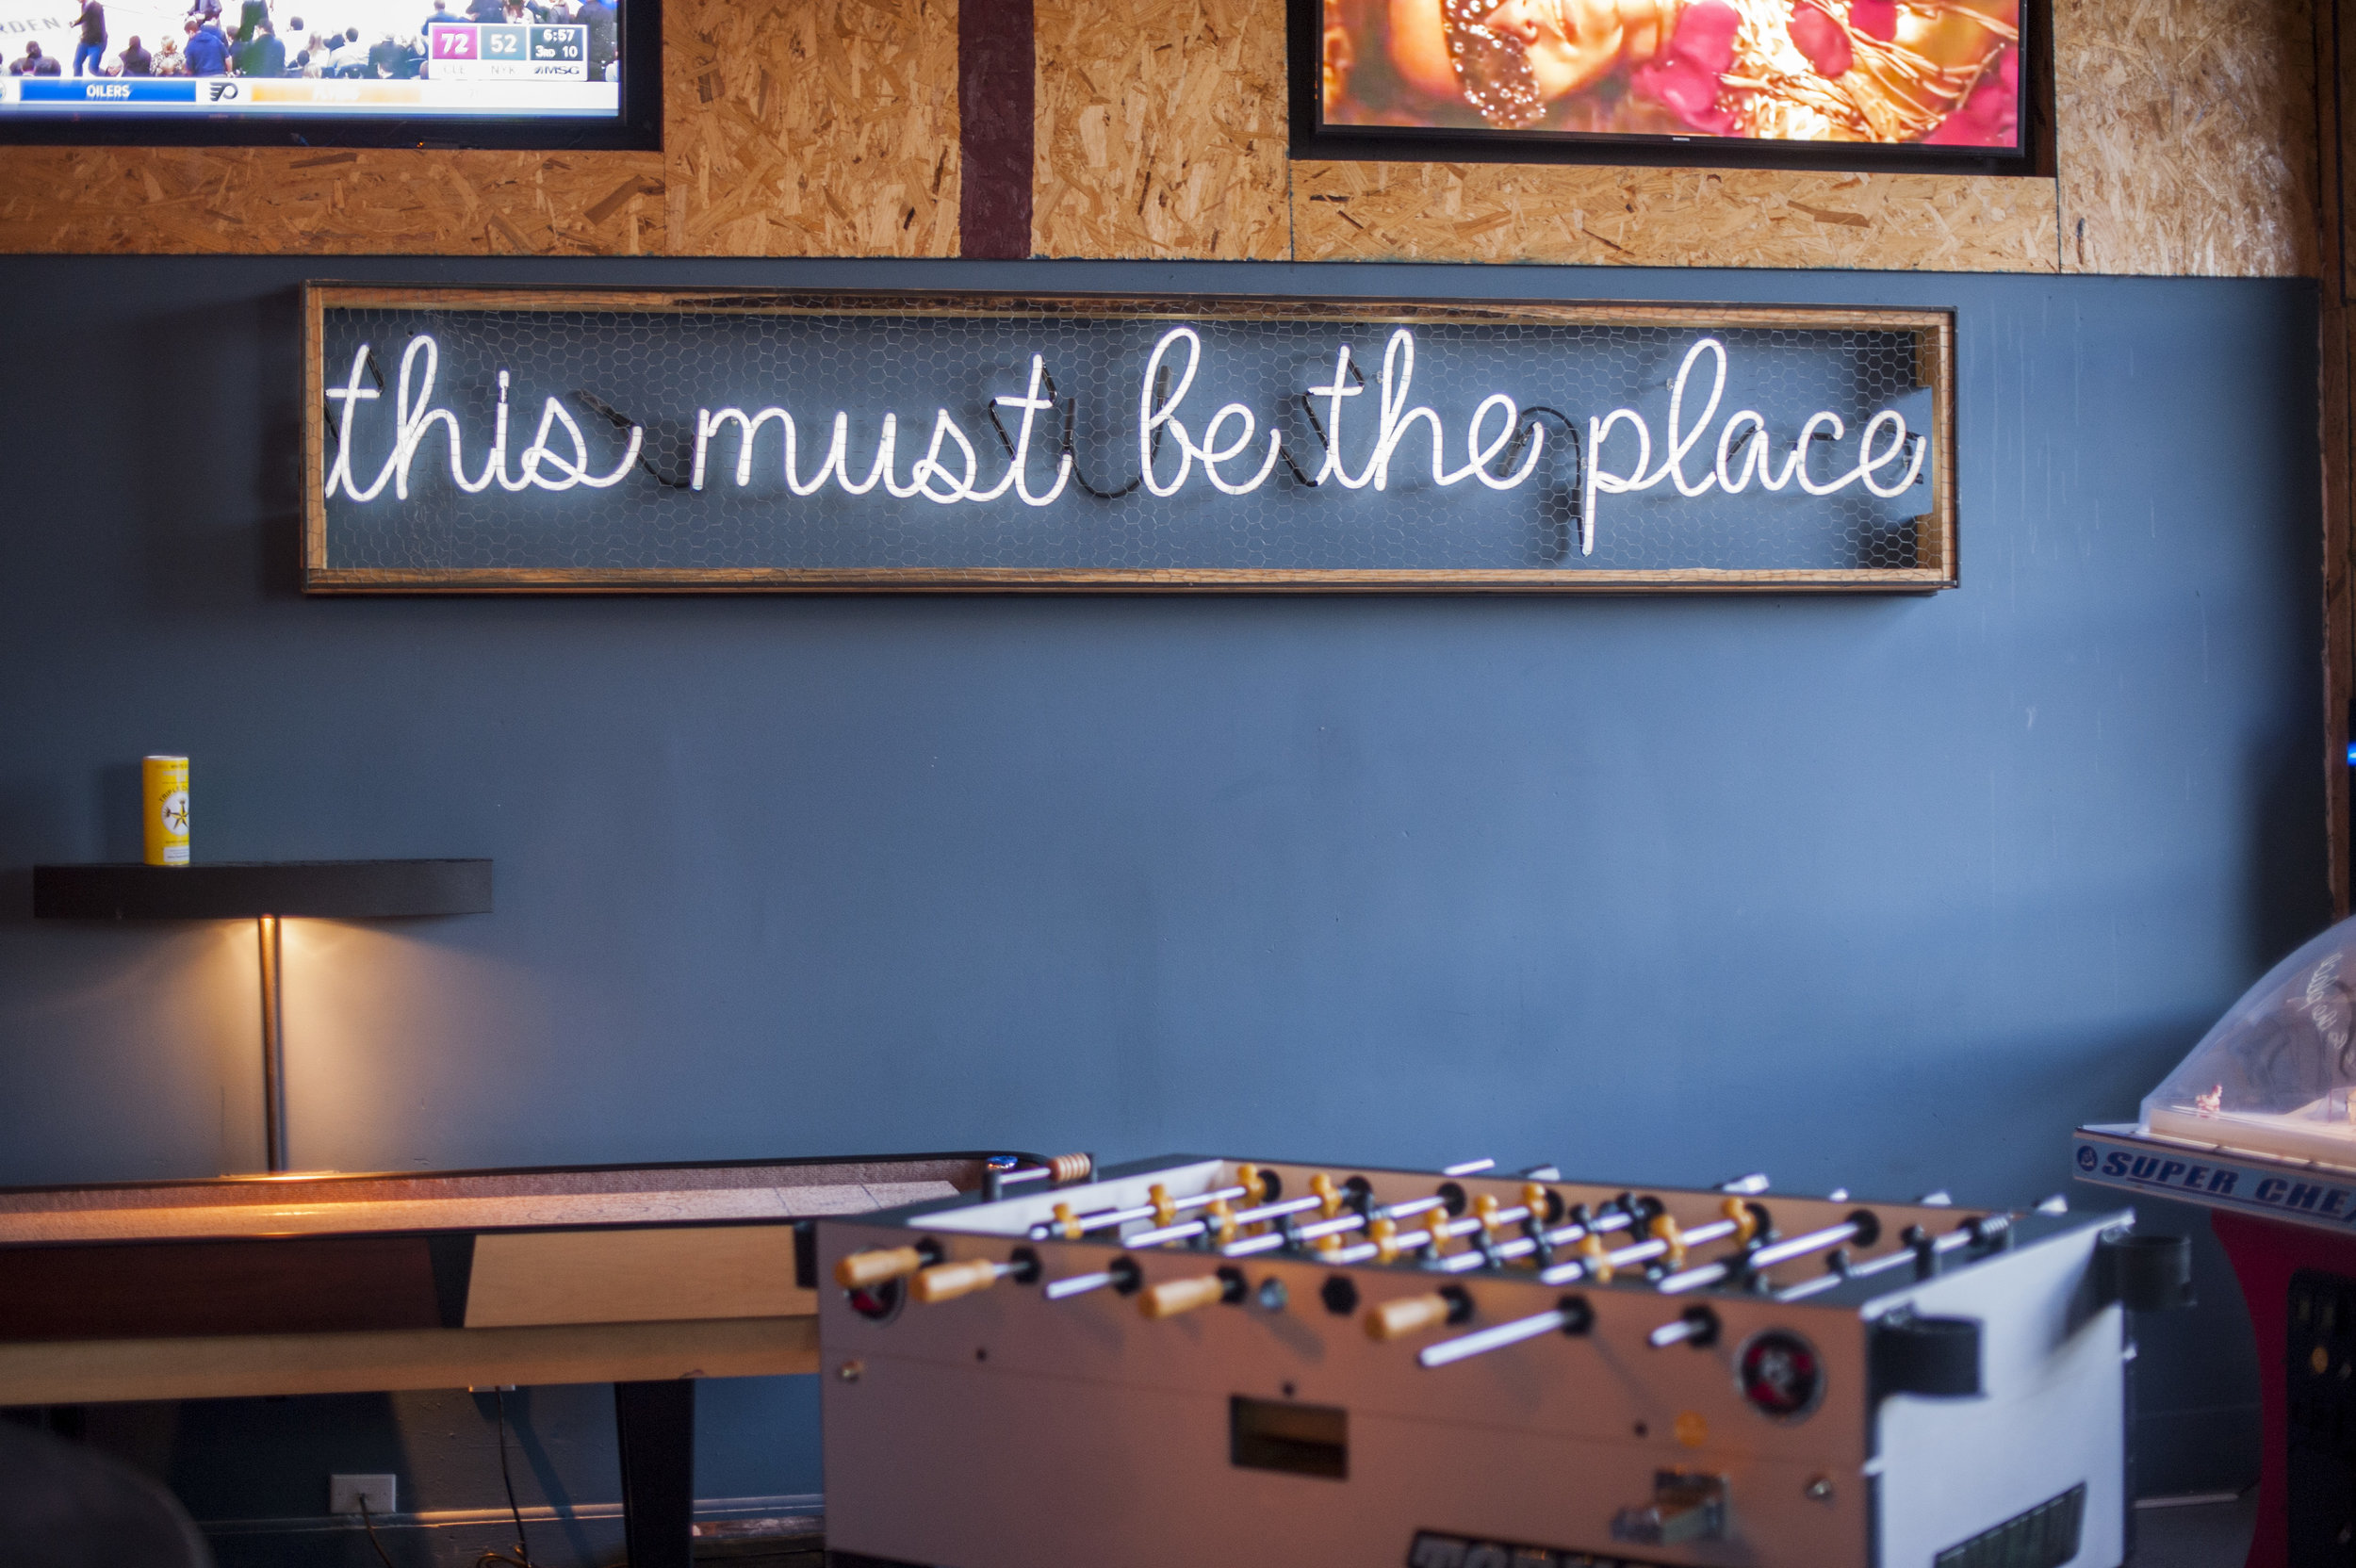 The Rust & Gold features bar room games like foosball, bubble hockey and shuffleboard to let patrons get involved for those who aren't satisfied with just spectating.